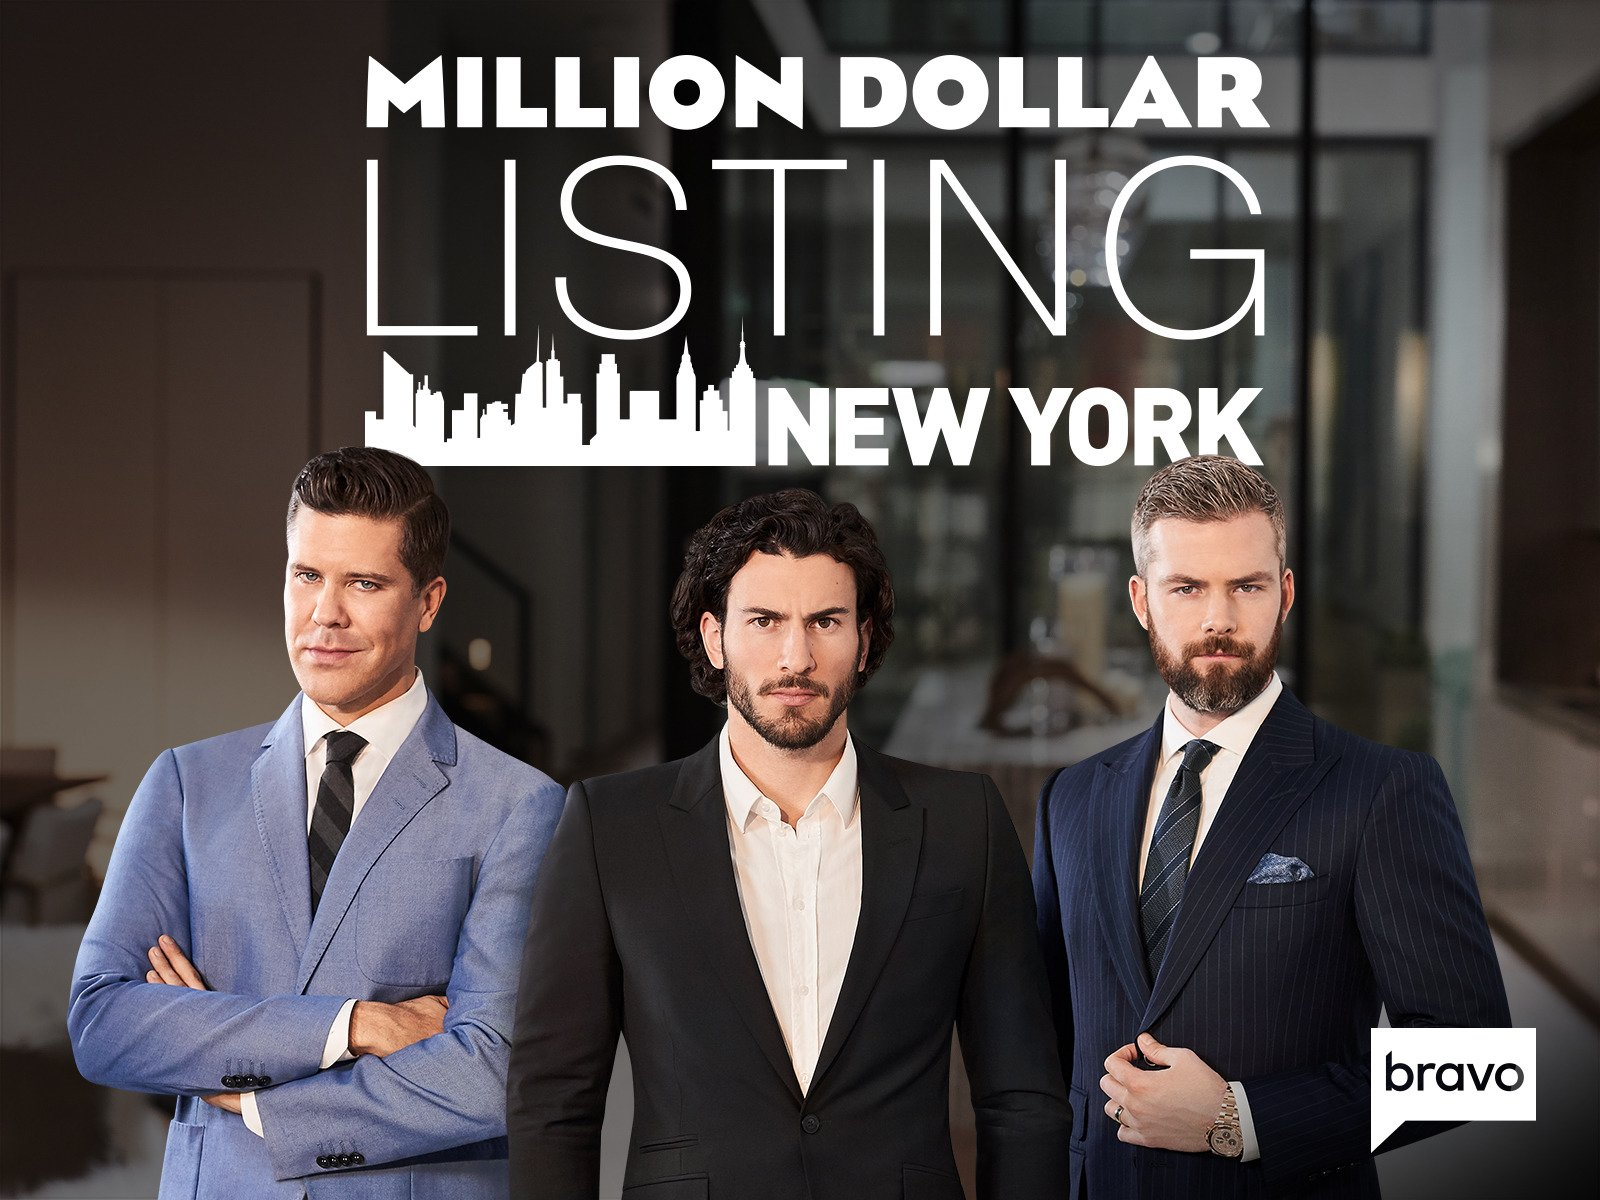 Amazon million dollar listing new york season 6 fredrik amazon million dollar listing new york season 6 fredrik eklund ryan serhant steve gold amazon digital services llc colourmoves Gallery